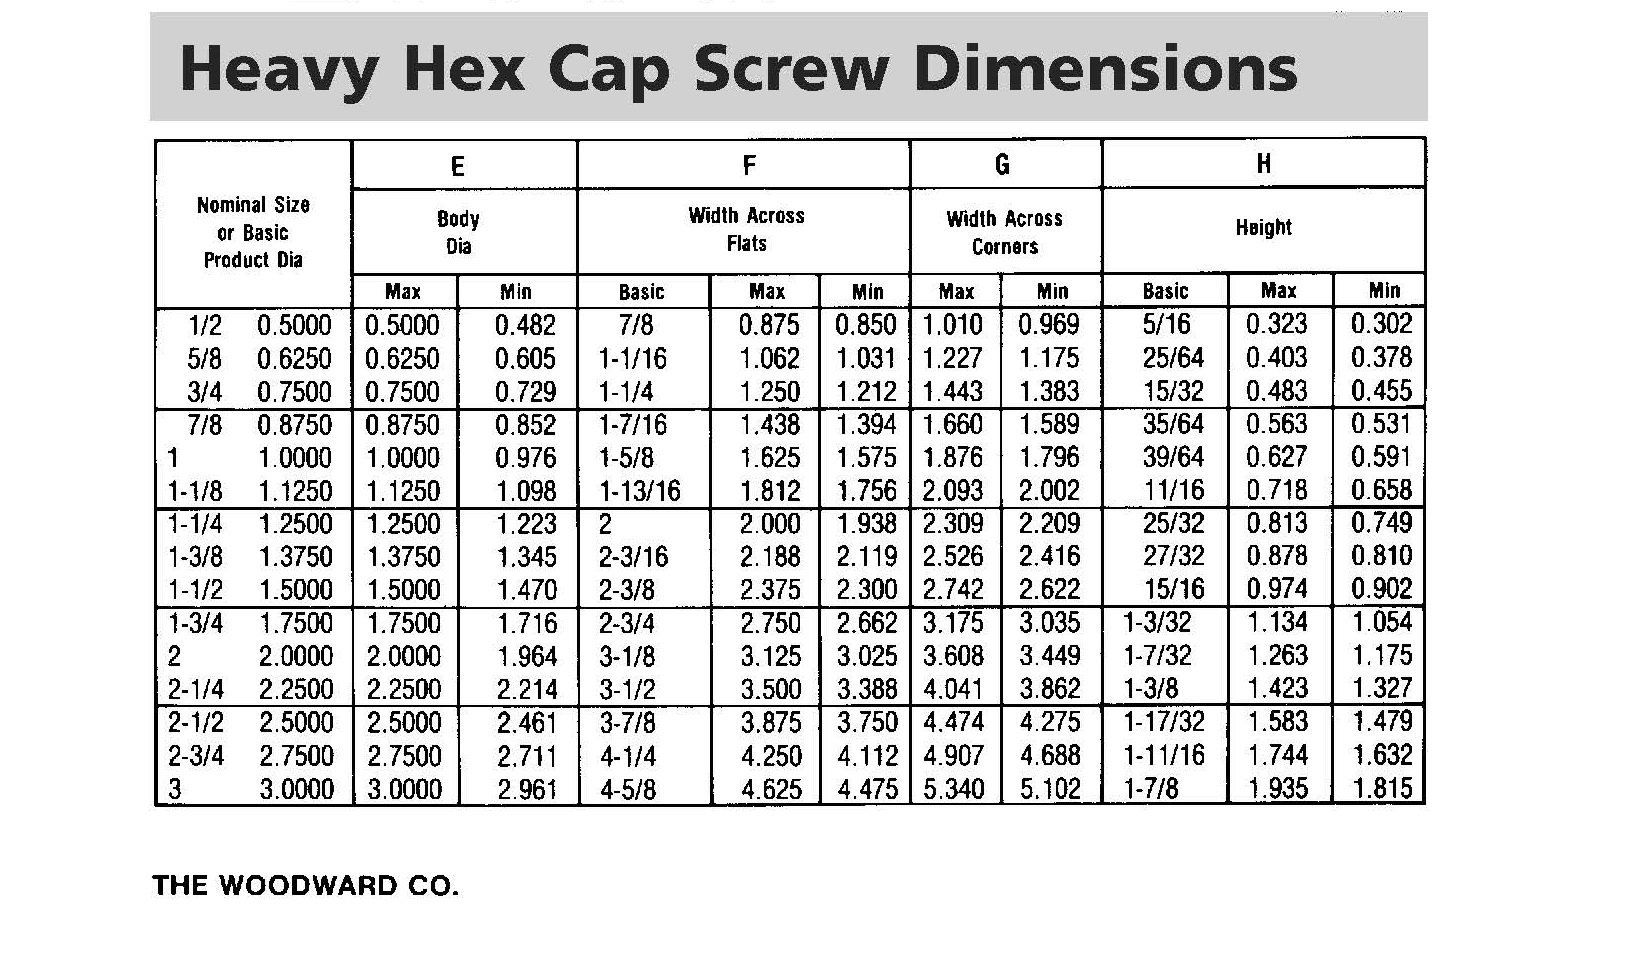 HEAVY HEX CAP SCREW DIMENSIONS